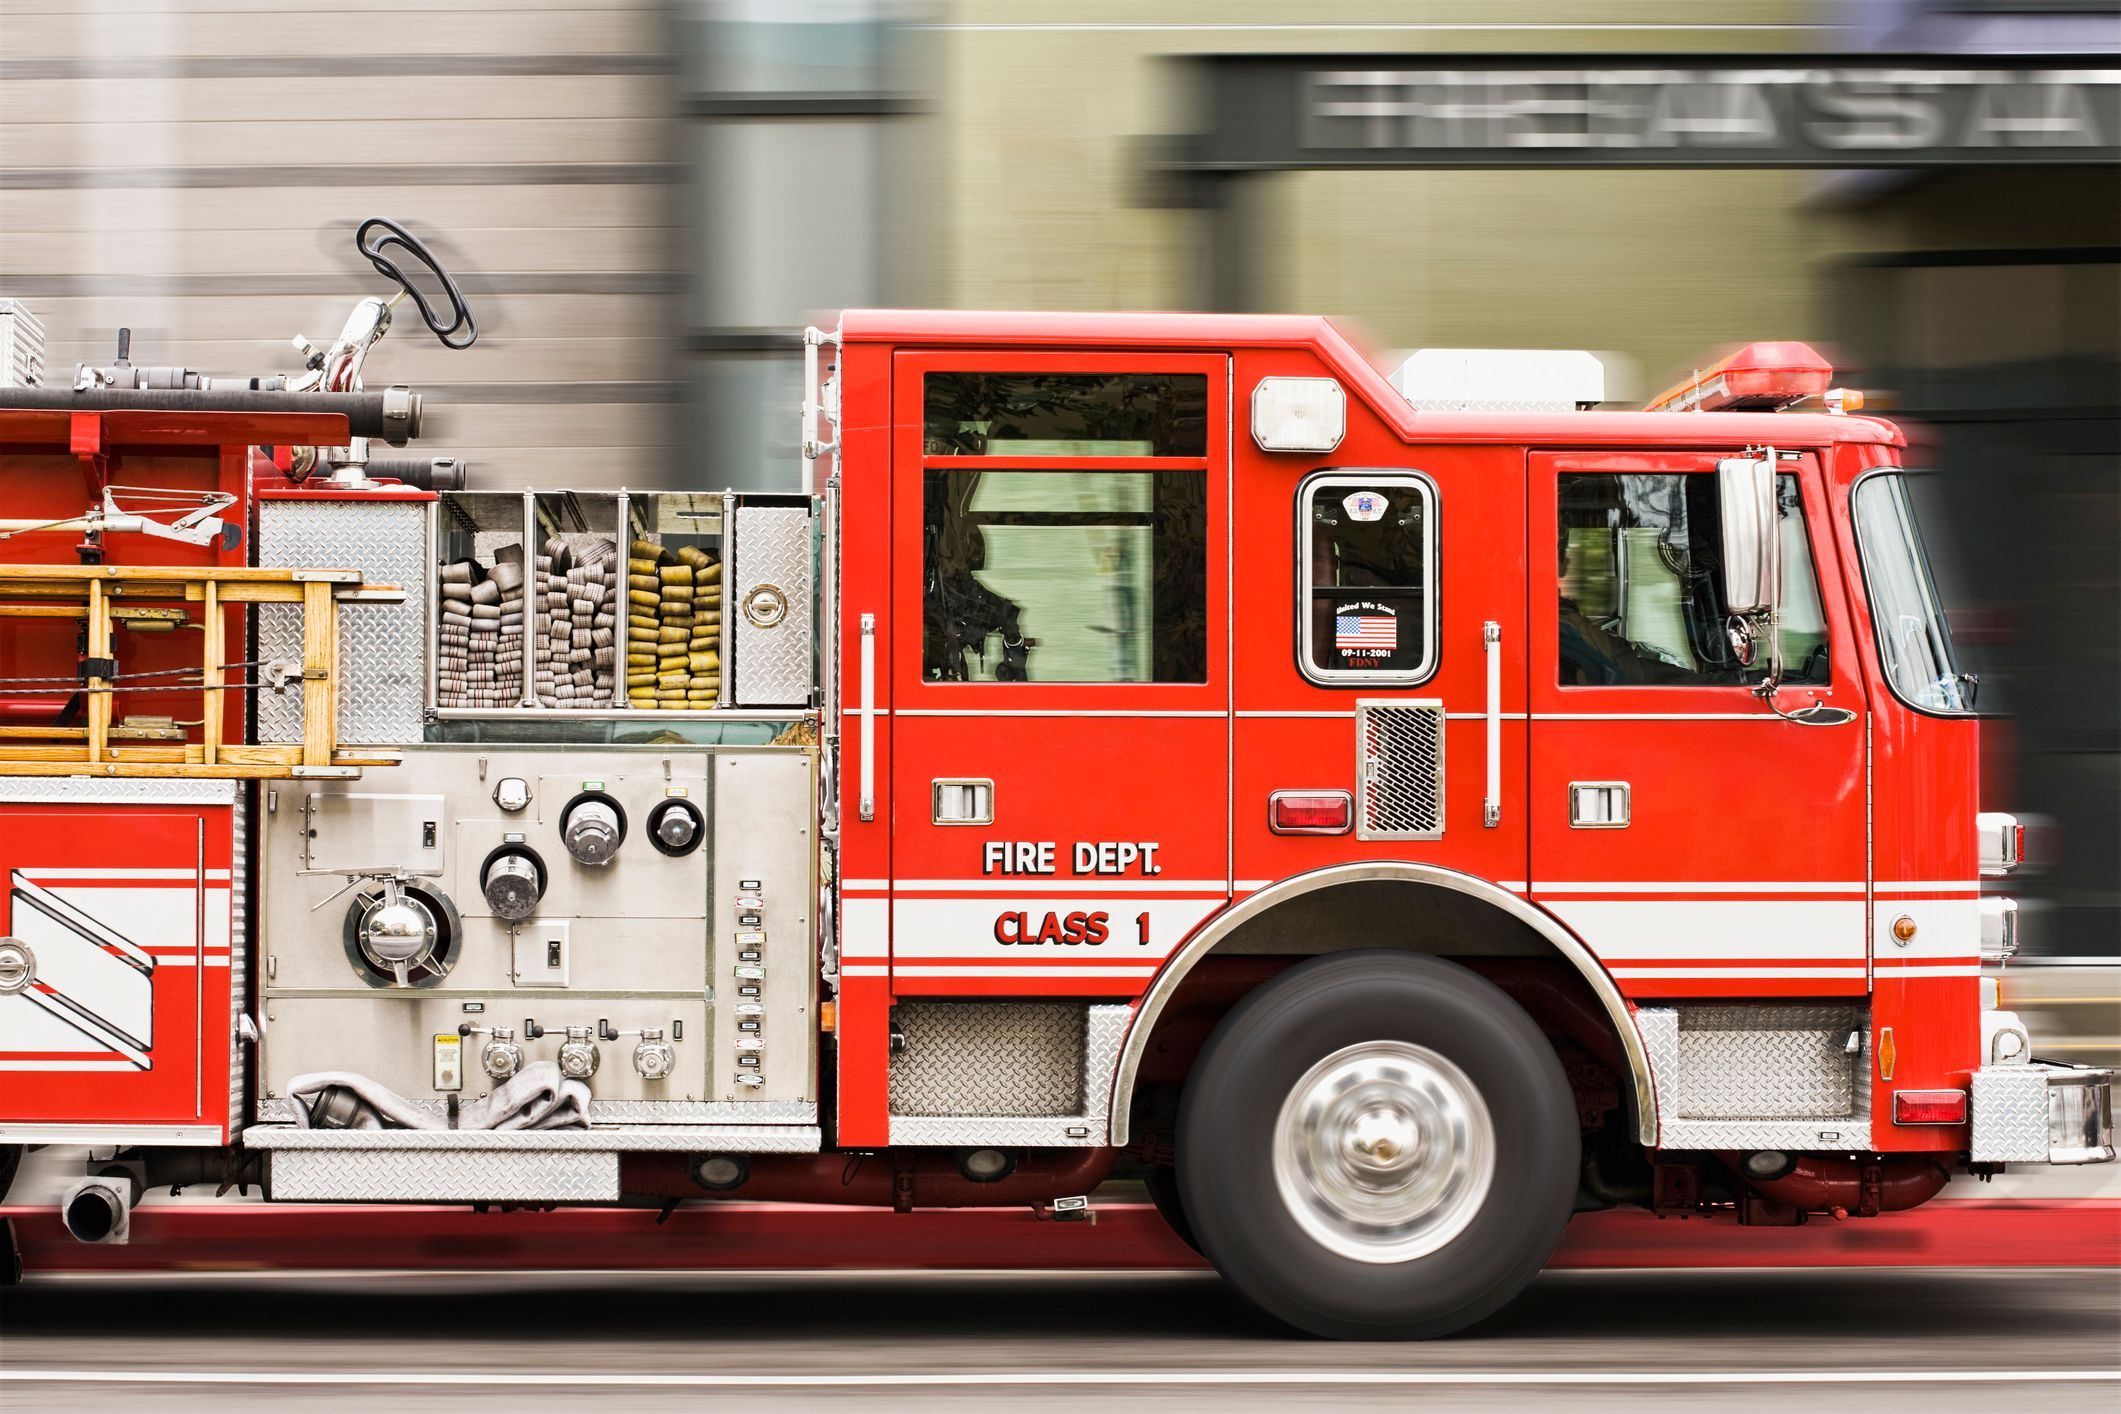 A firetruck driving through the city.   Source: Getty Images